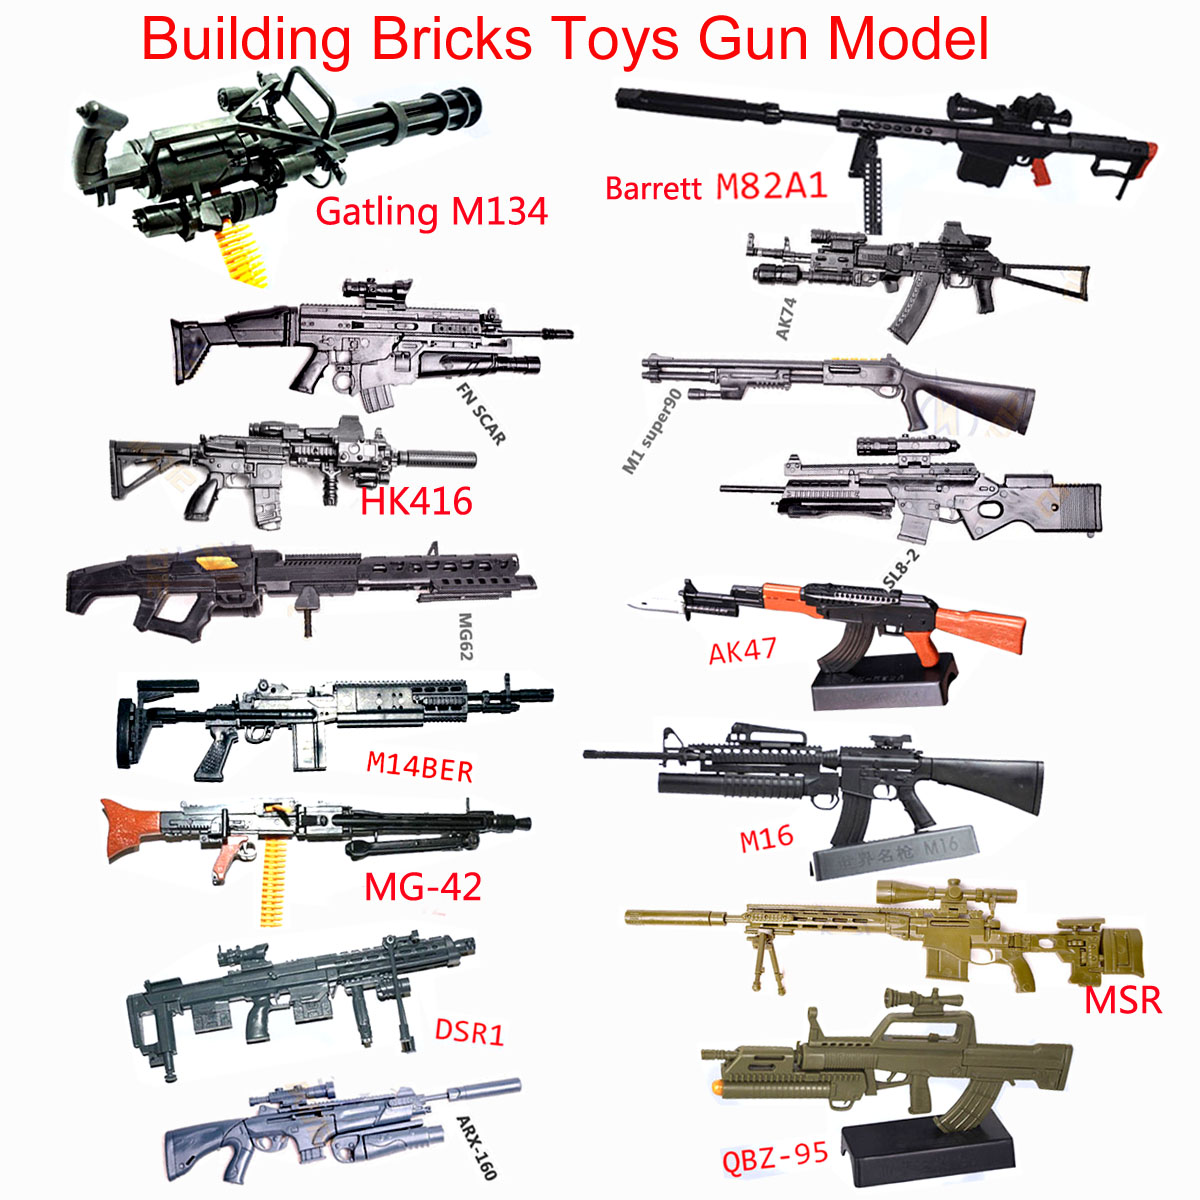 1:6 Scale Toy Gun Model M134 MG42 AK47 98K Rifle Puzzles Building Bricks Assembly Gun Model PUBG Weapon For Action Figure